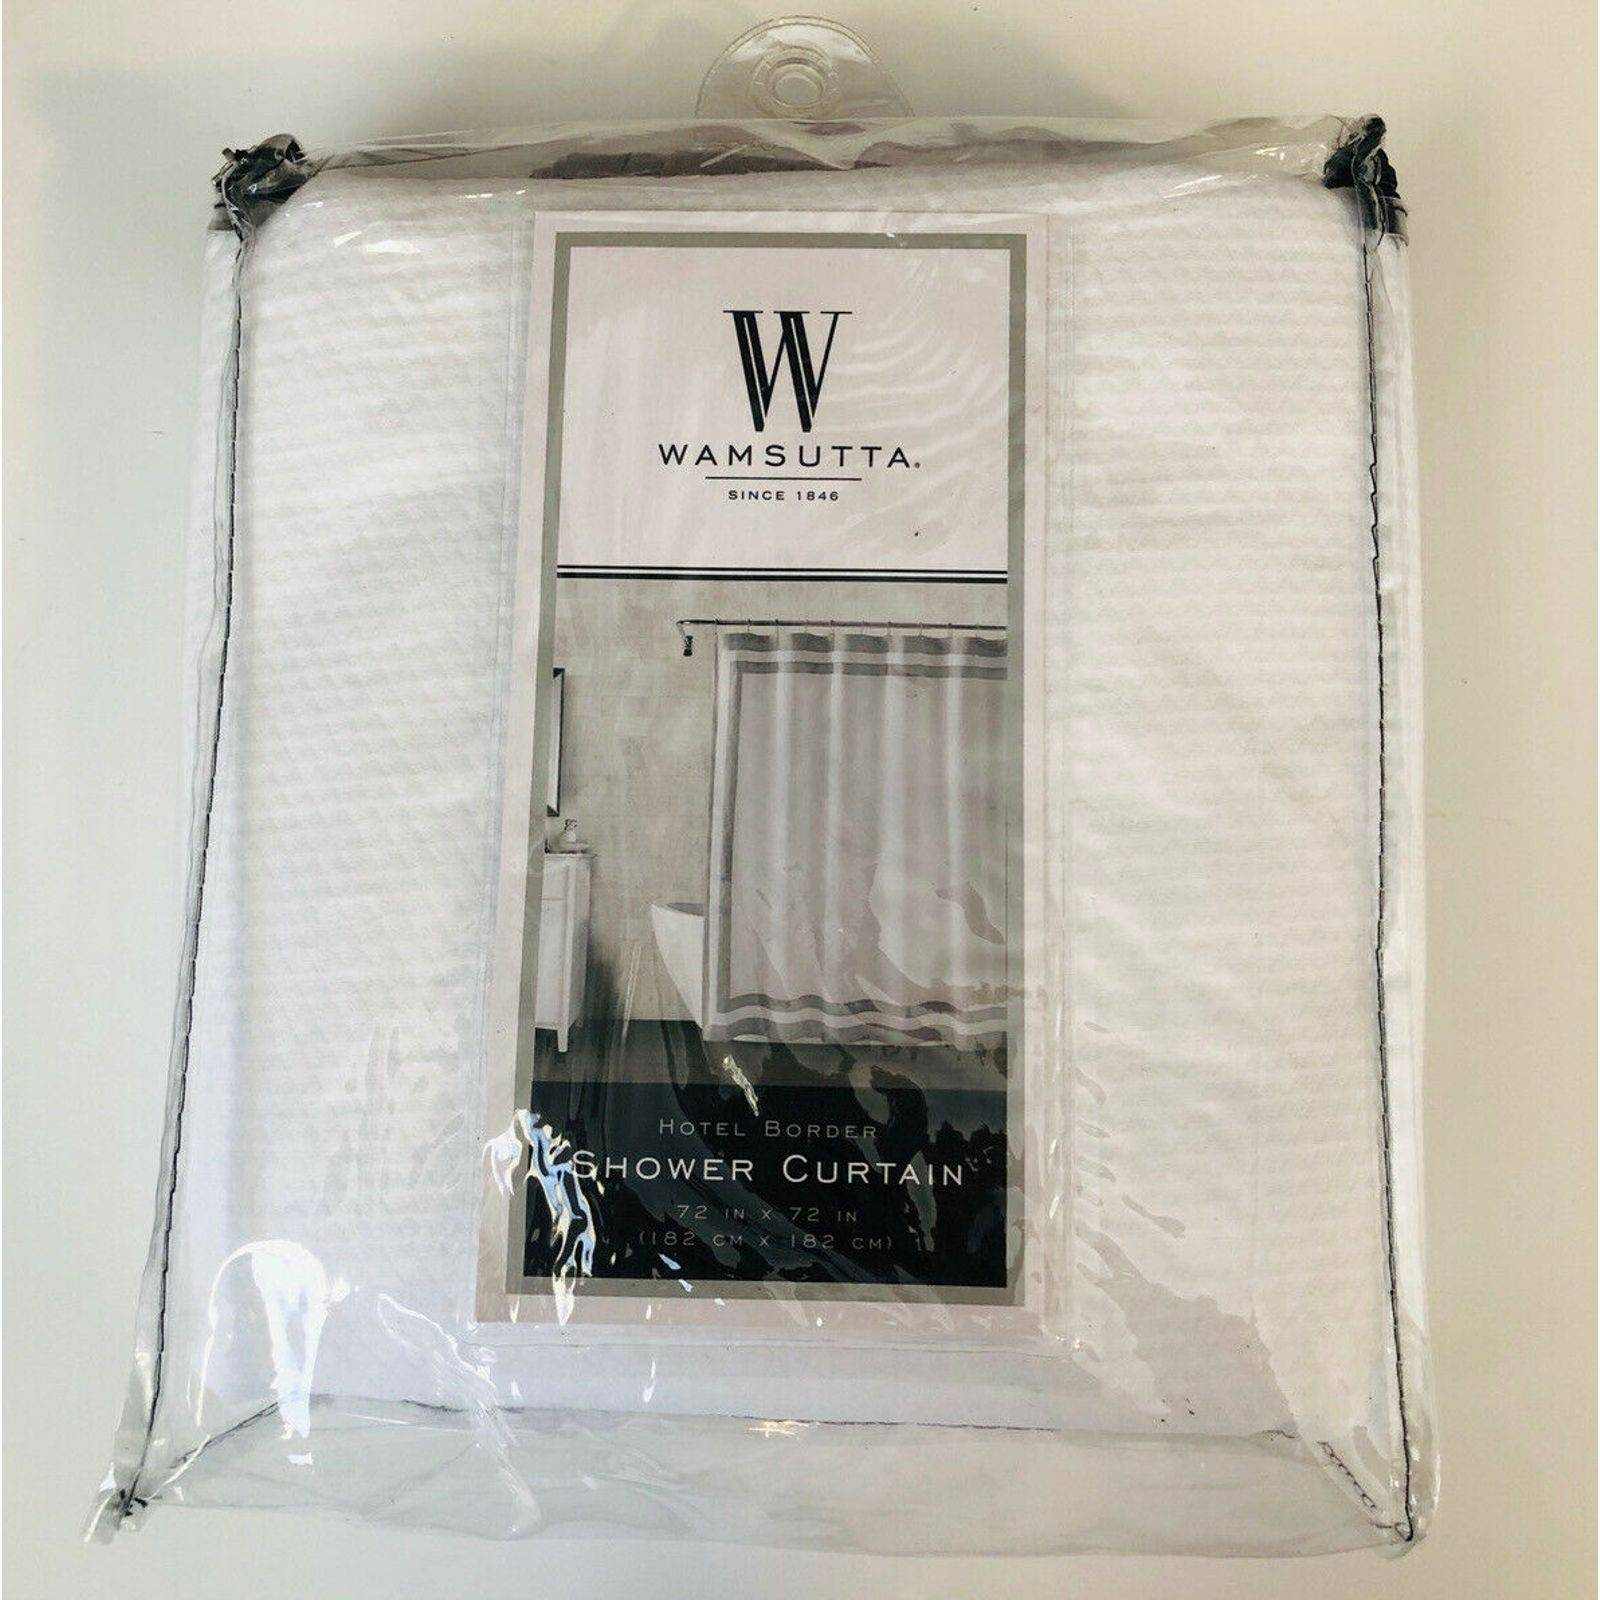 Wamsutta Hotel Border Shower Curtain